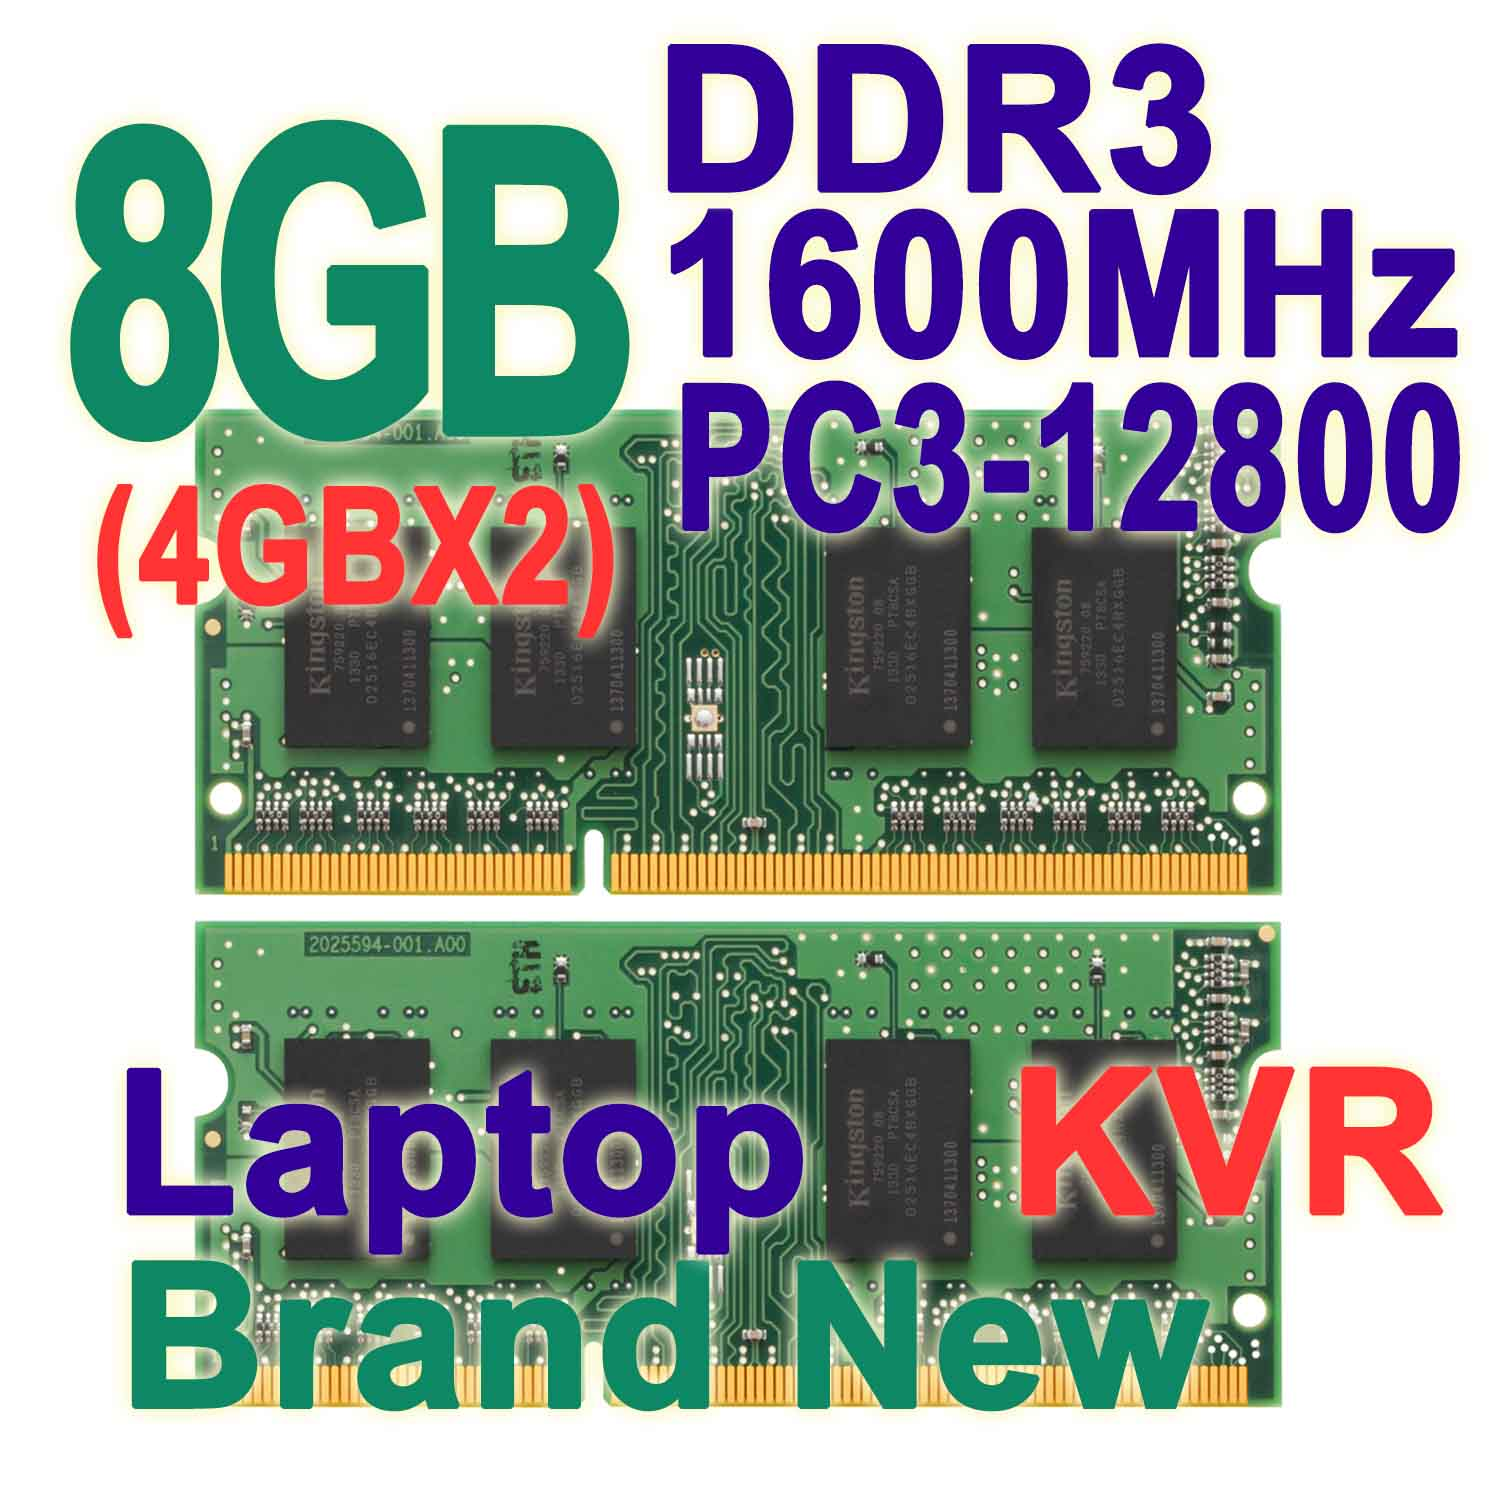 8GB Kit ( 4GB X2) Dual Channel DDR3 1600MHz 204-pin SODIMM PC3-12800 Non-ECC CL11 Notebook Laptop Memory RAM For Intel &amp; AMD KVR<br><br>Aliexpress